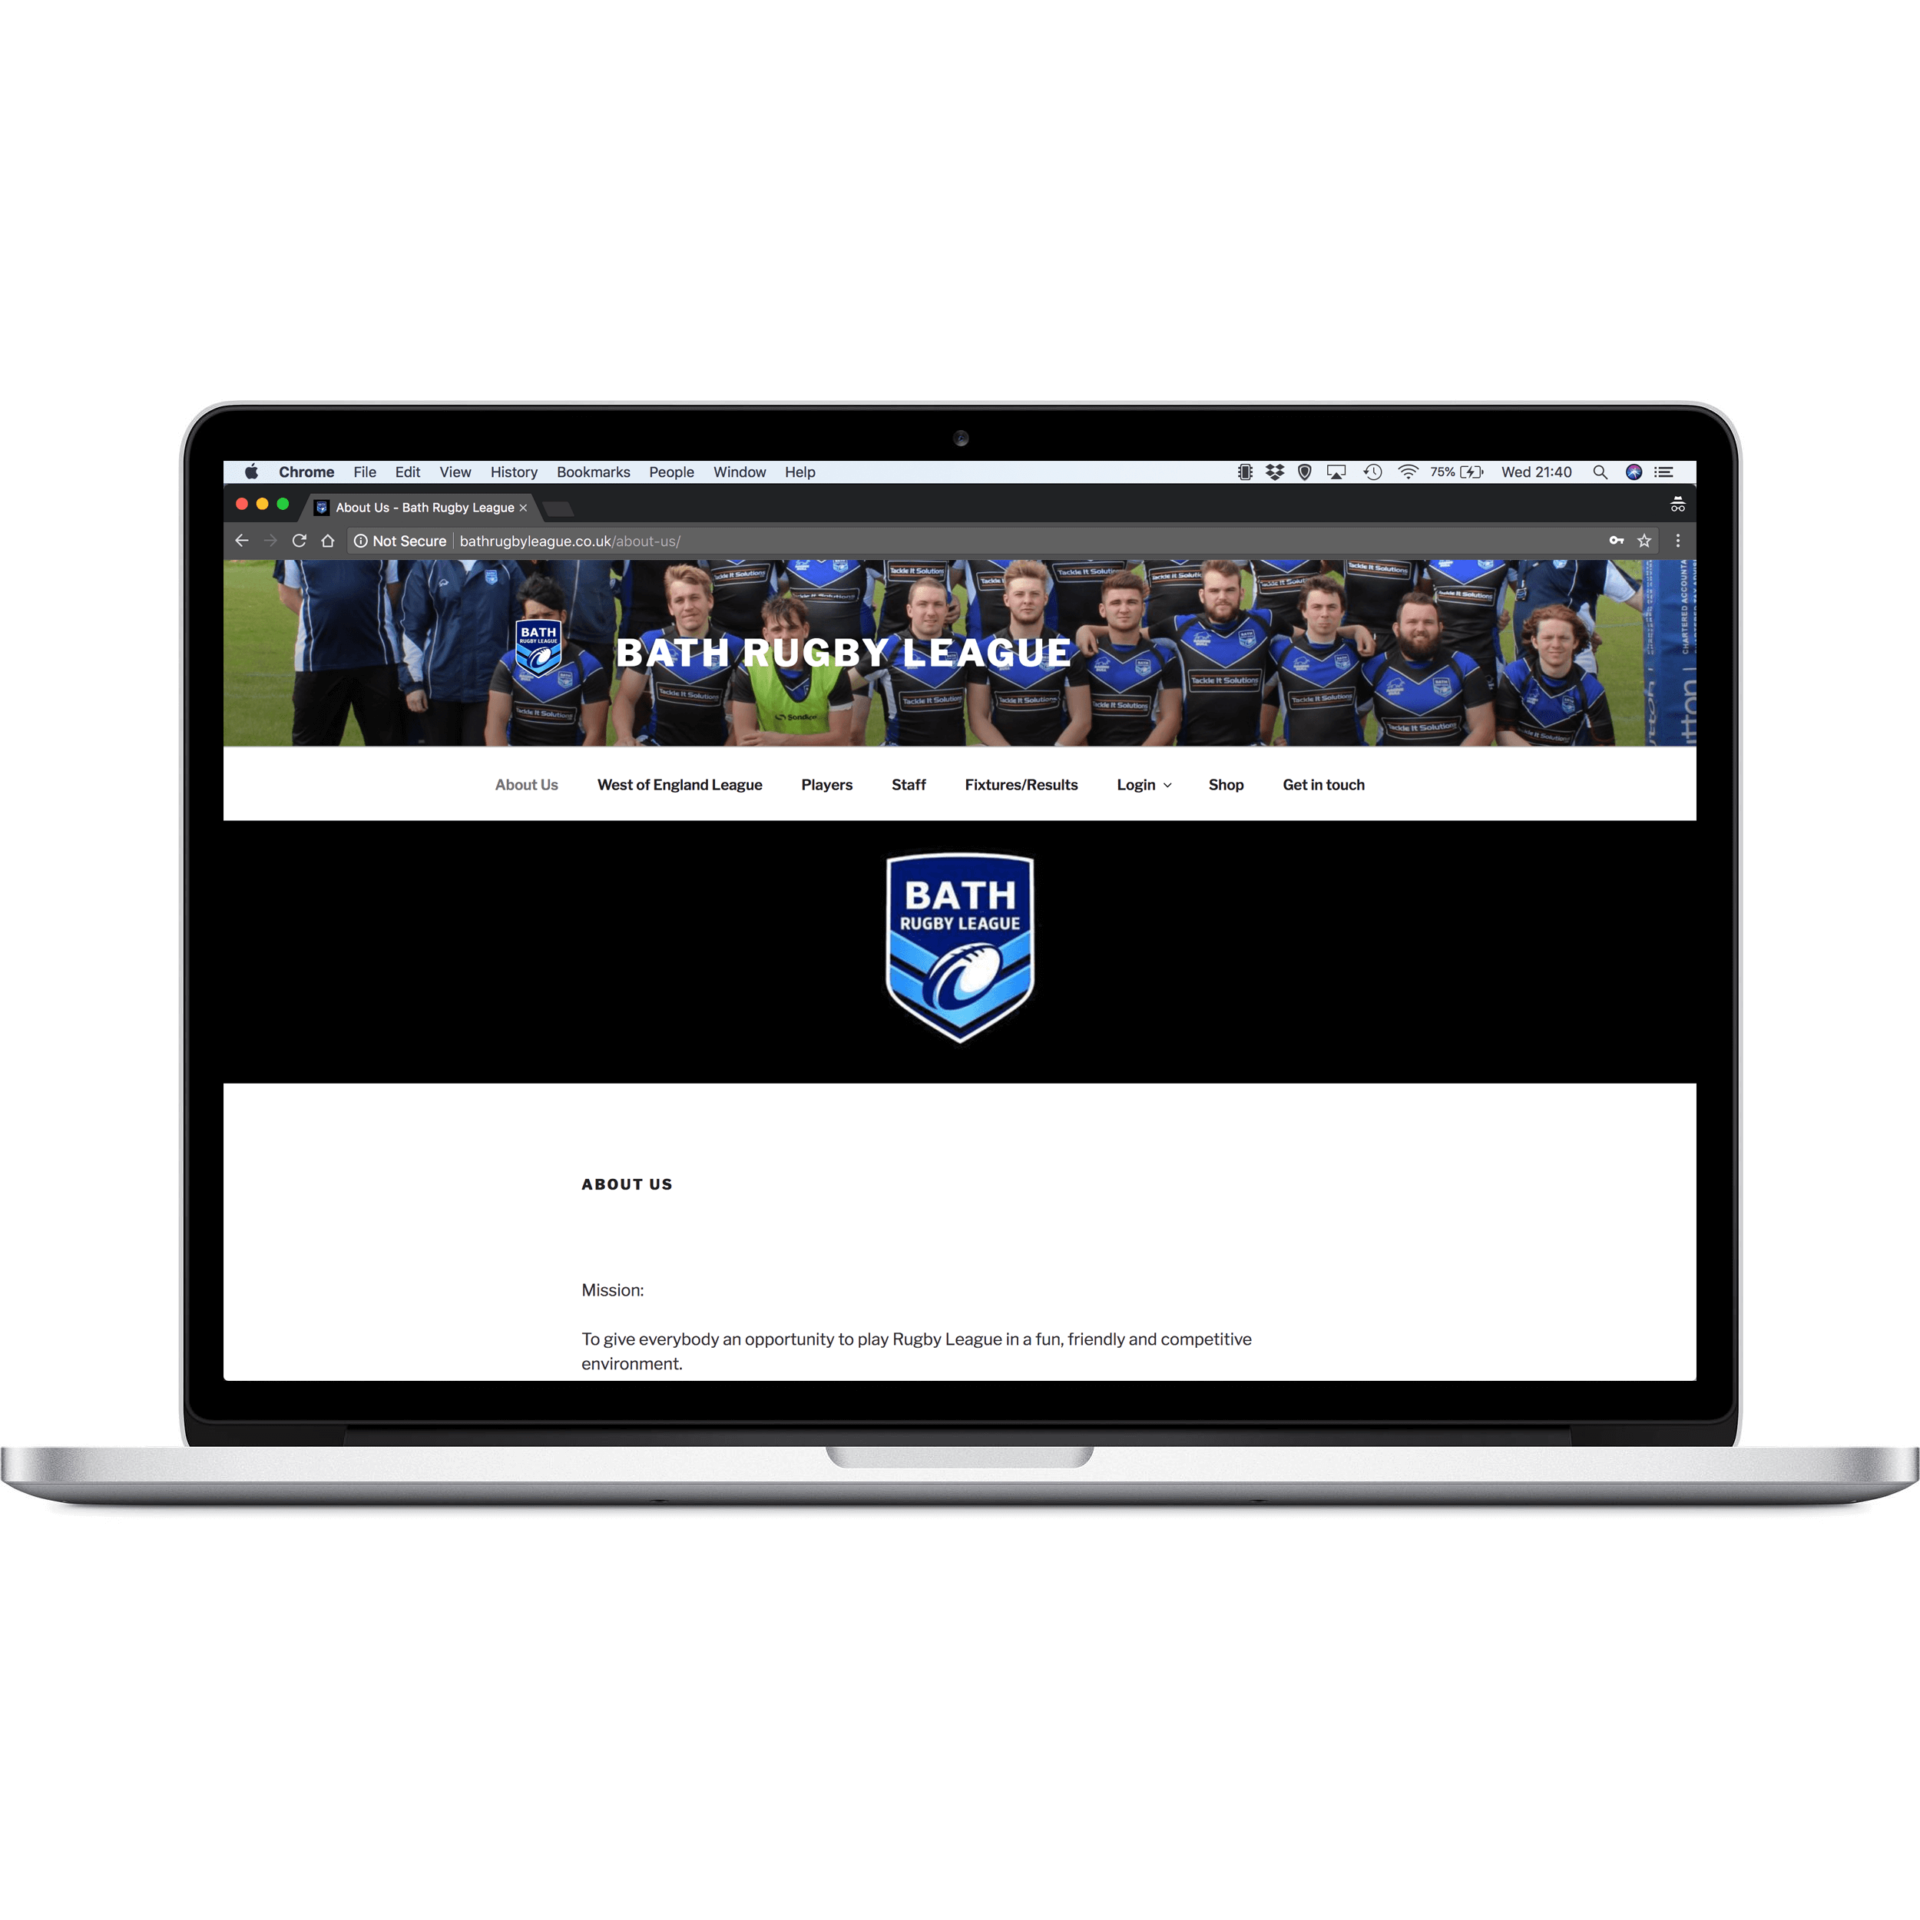 Bath Rugby League Website